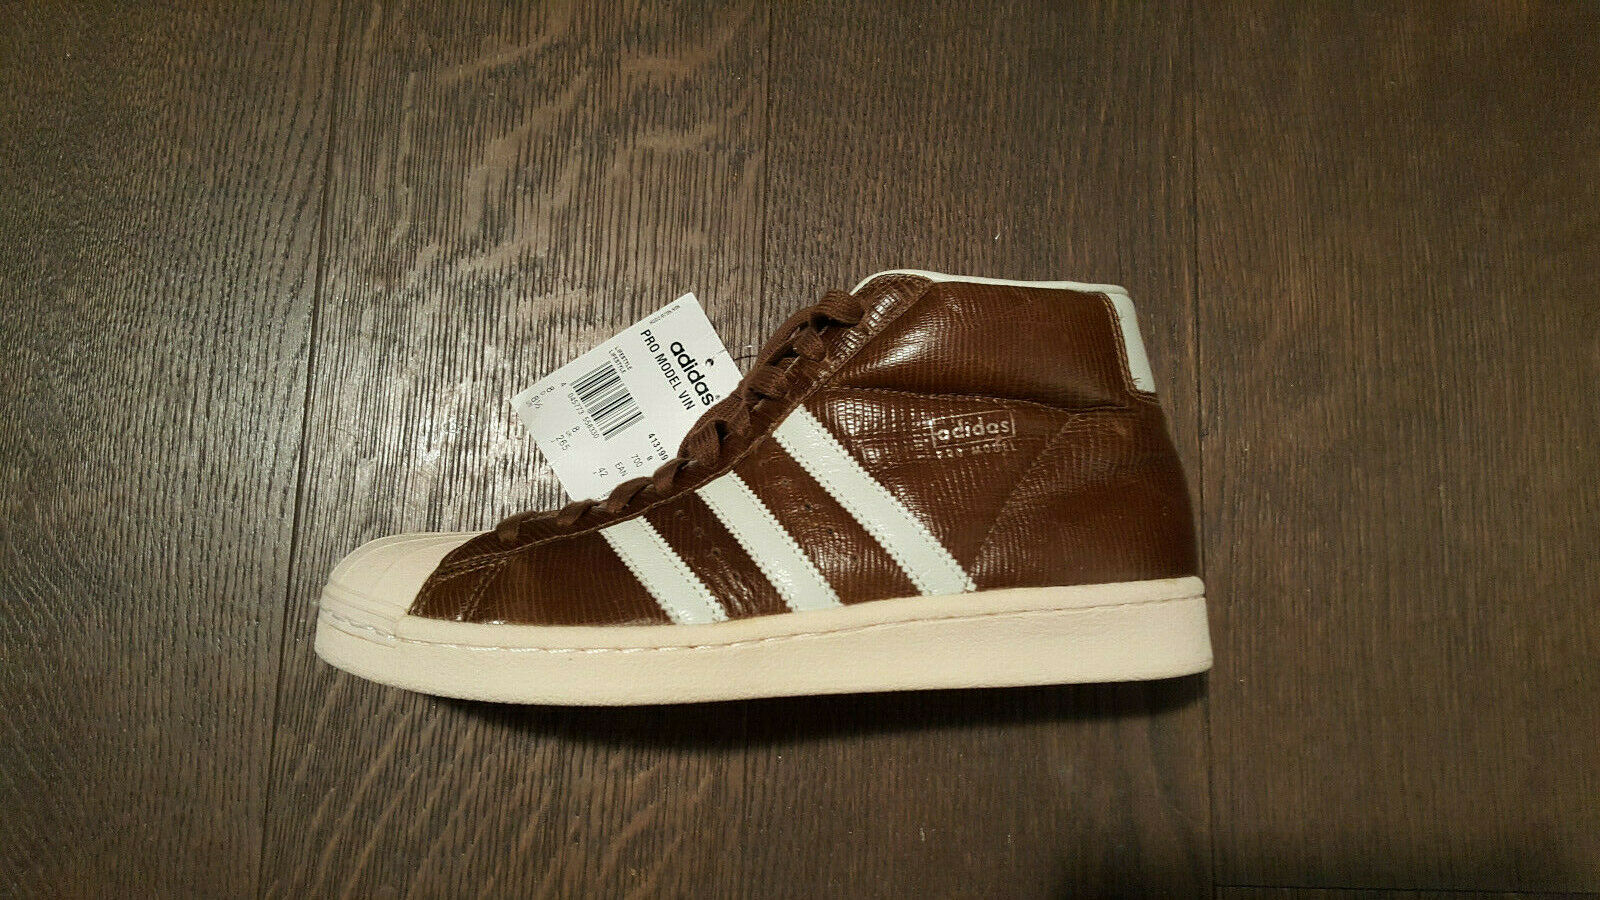 Adidas  Pro Model Vintage  Leather, New with Box, Japan-Model, High-Top, UK 7,5